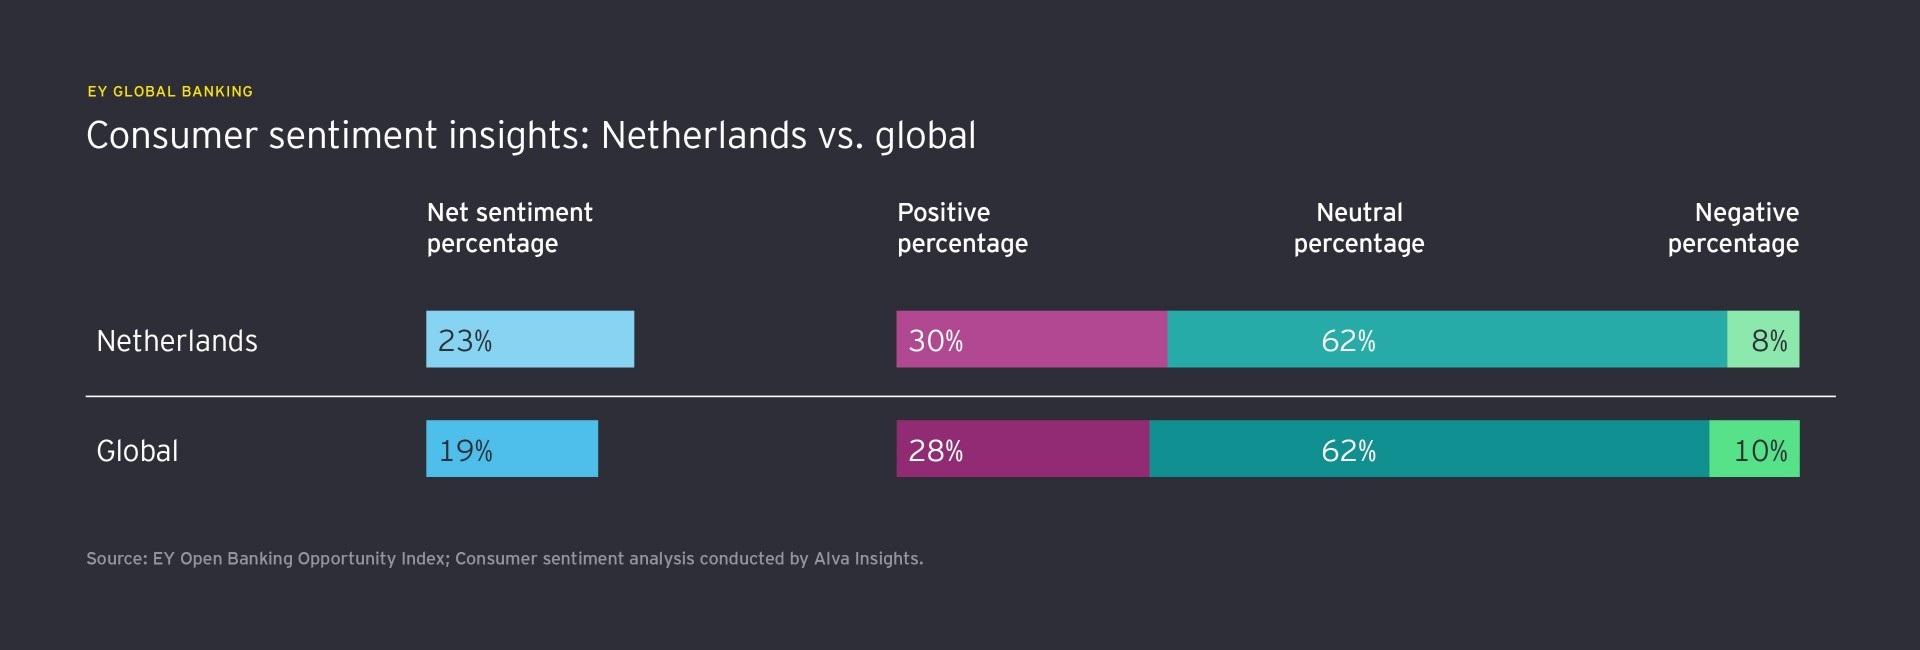 consumer sentiment insights netherlands